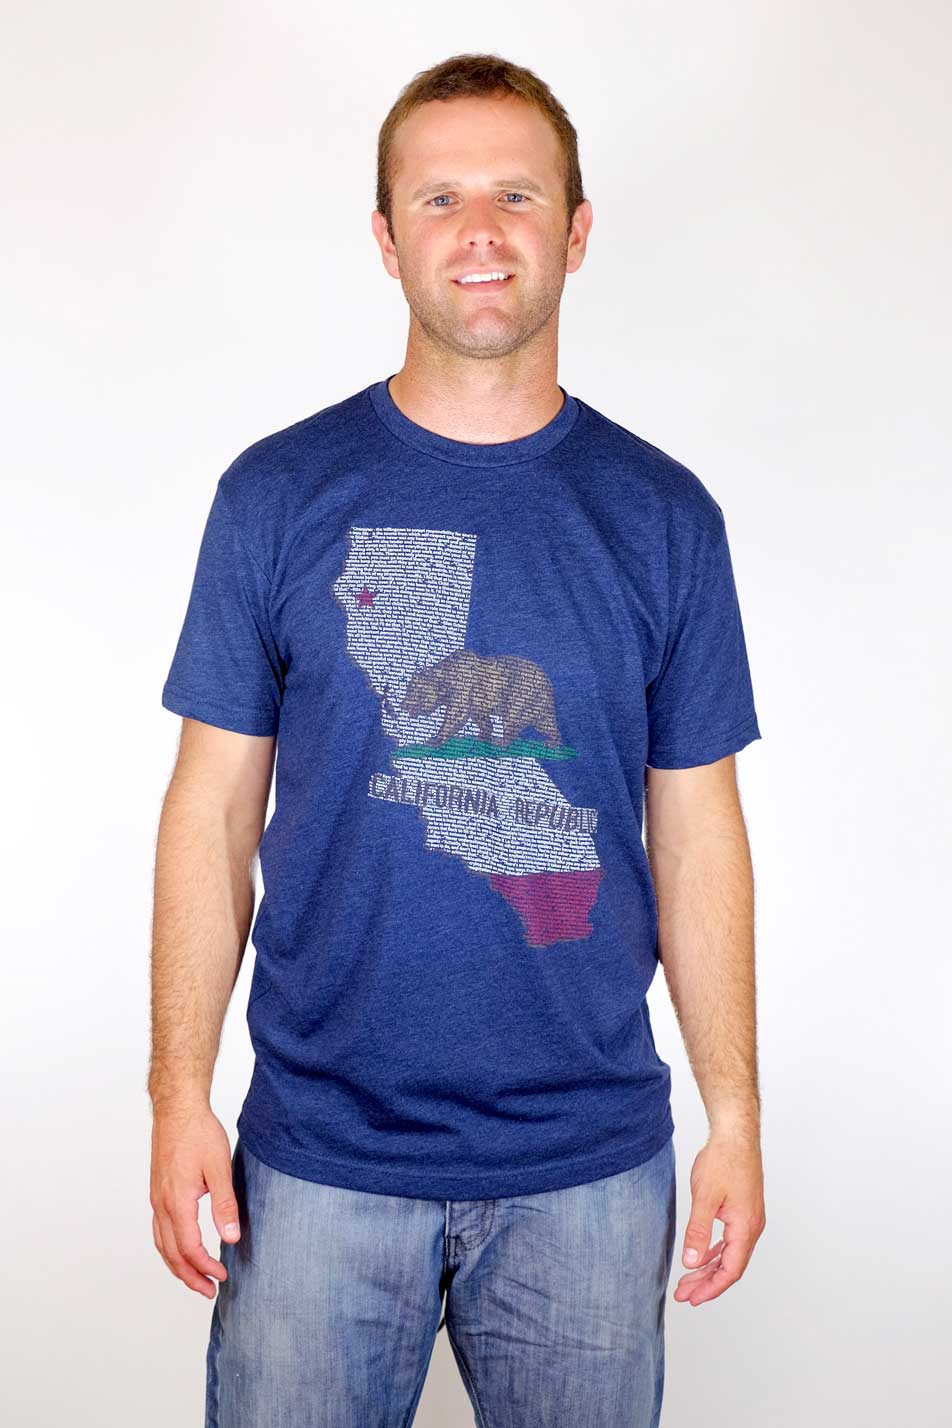 Think Positive Apparel's California Design on Ladies Triblend Crew Neck T-shirt in navy blue